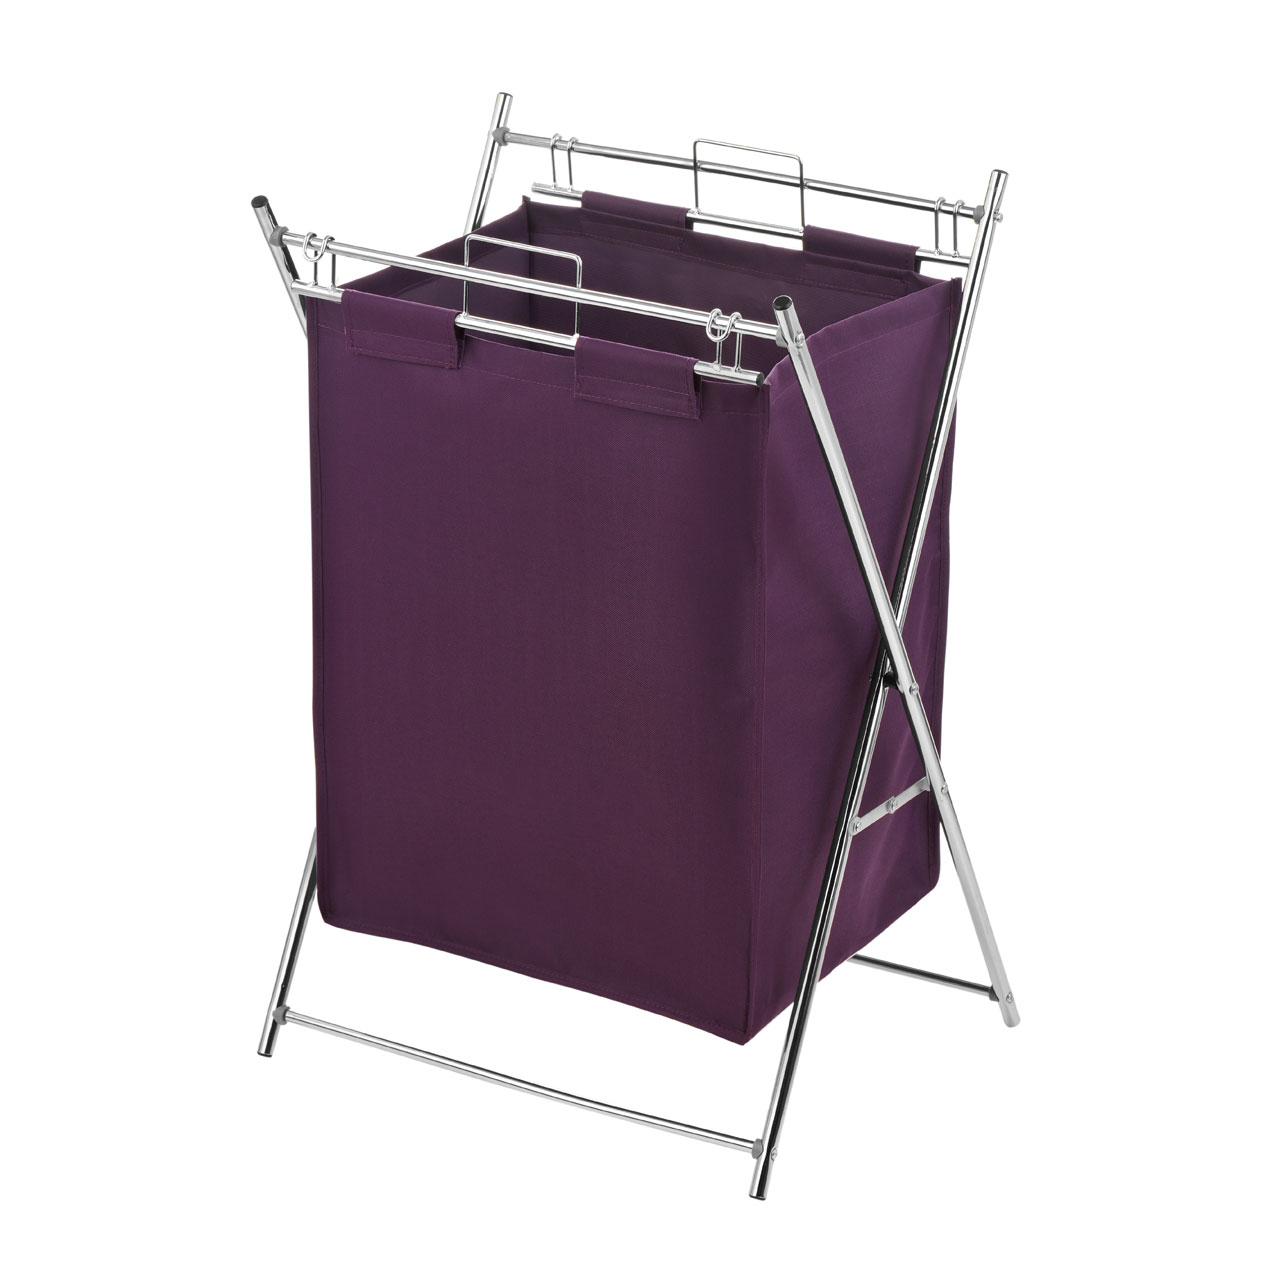 ... Furniture  DIY  Household  Laundry Supplies  Laundry Baskets Bins